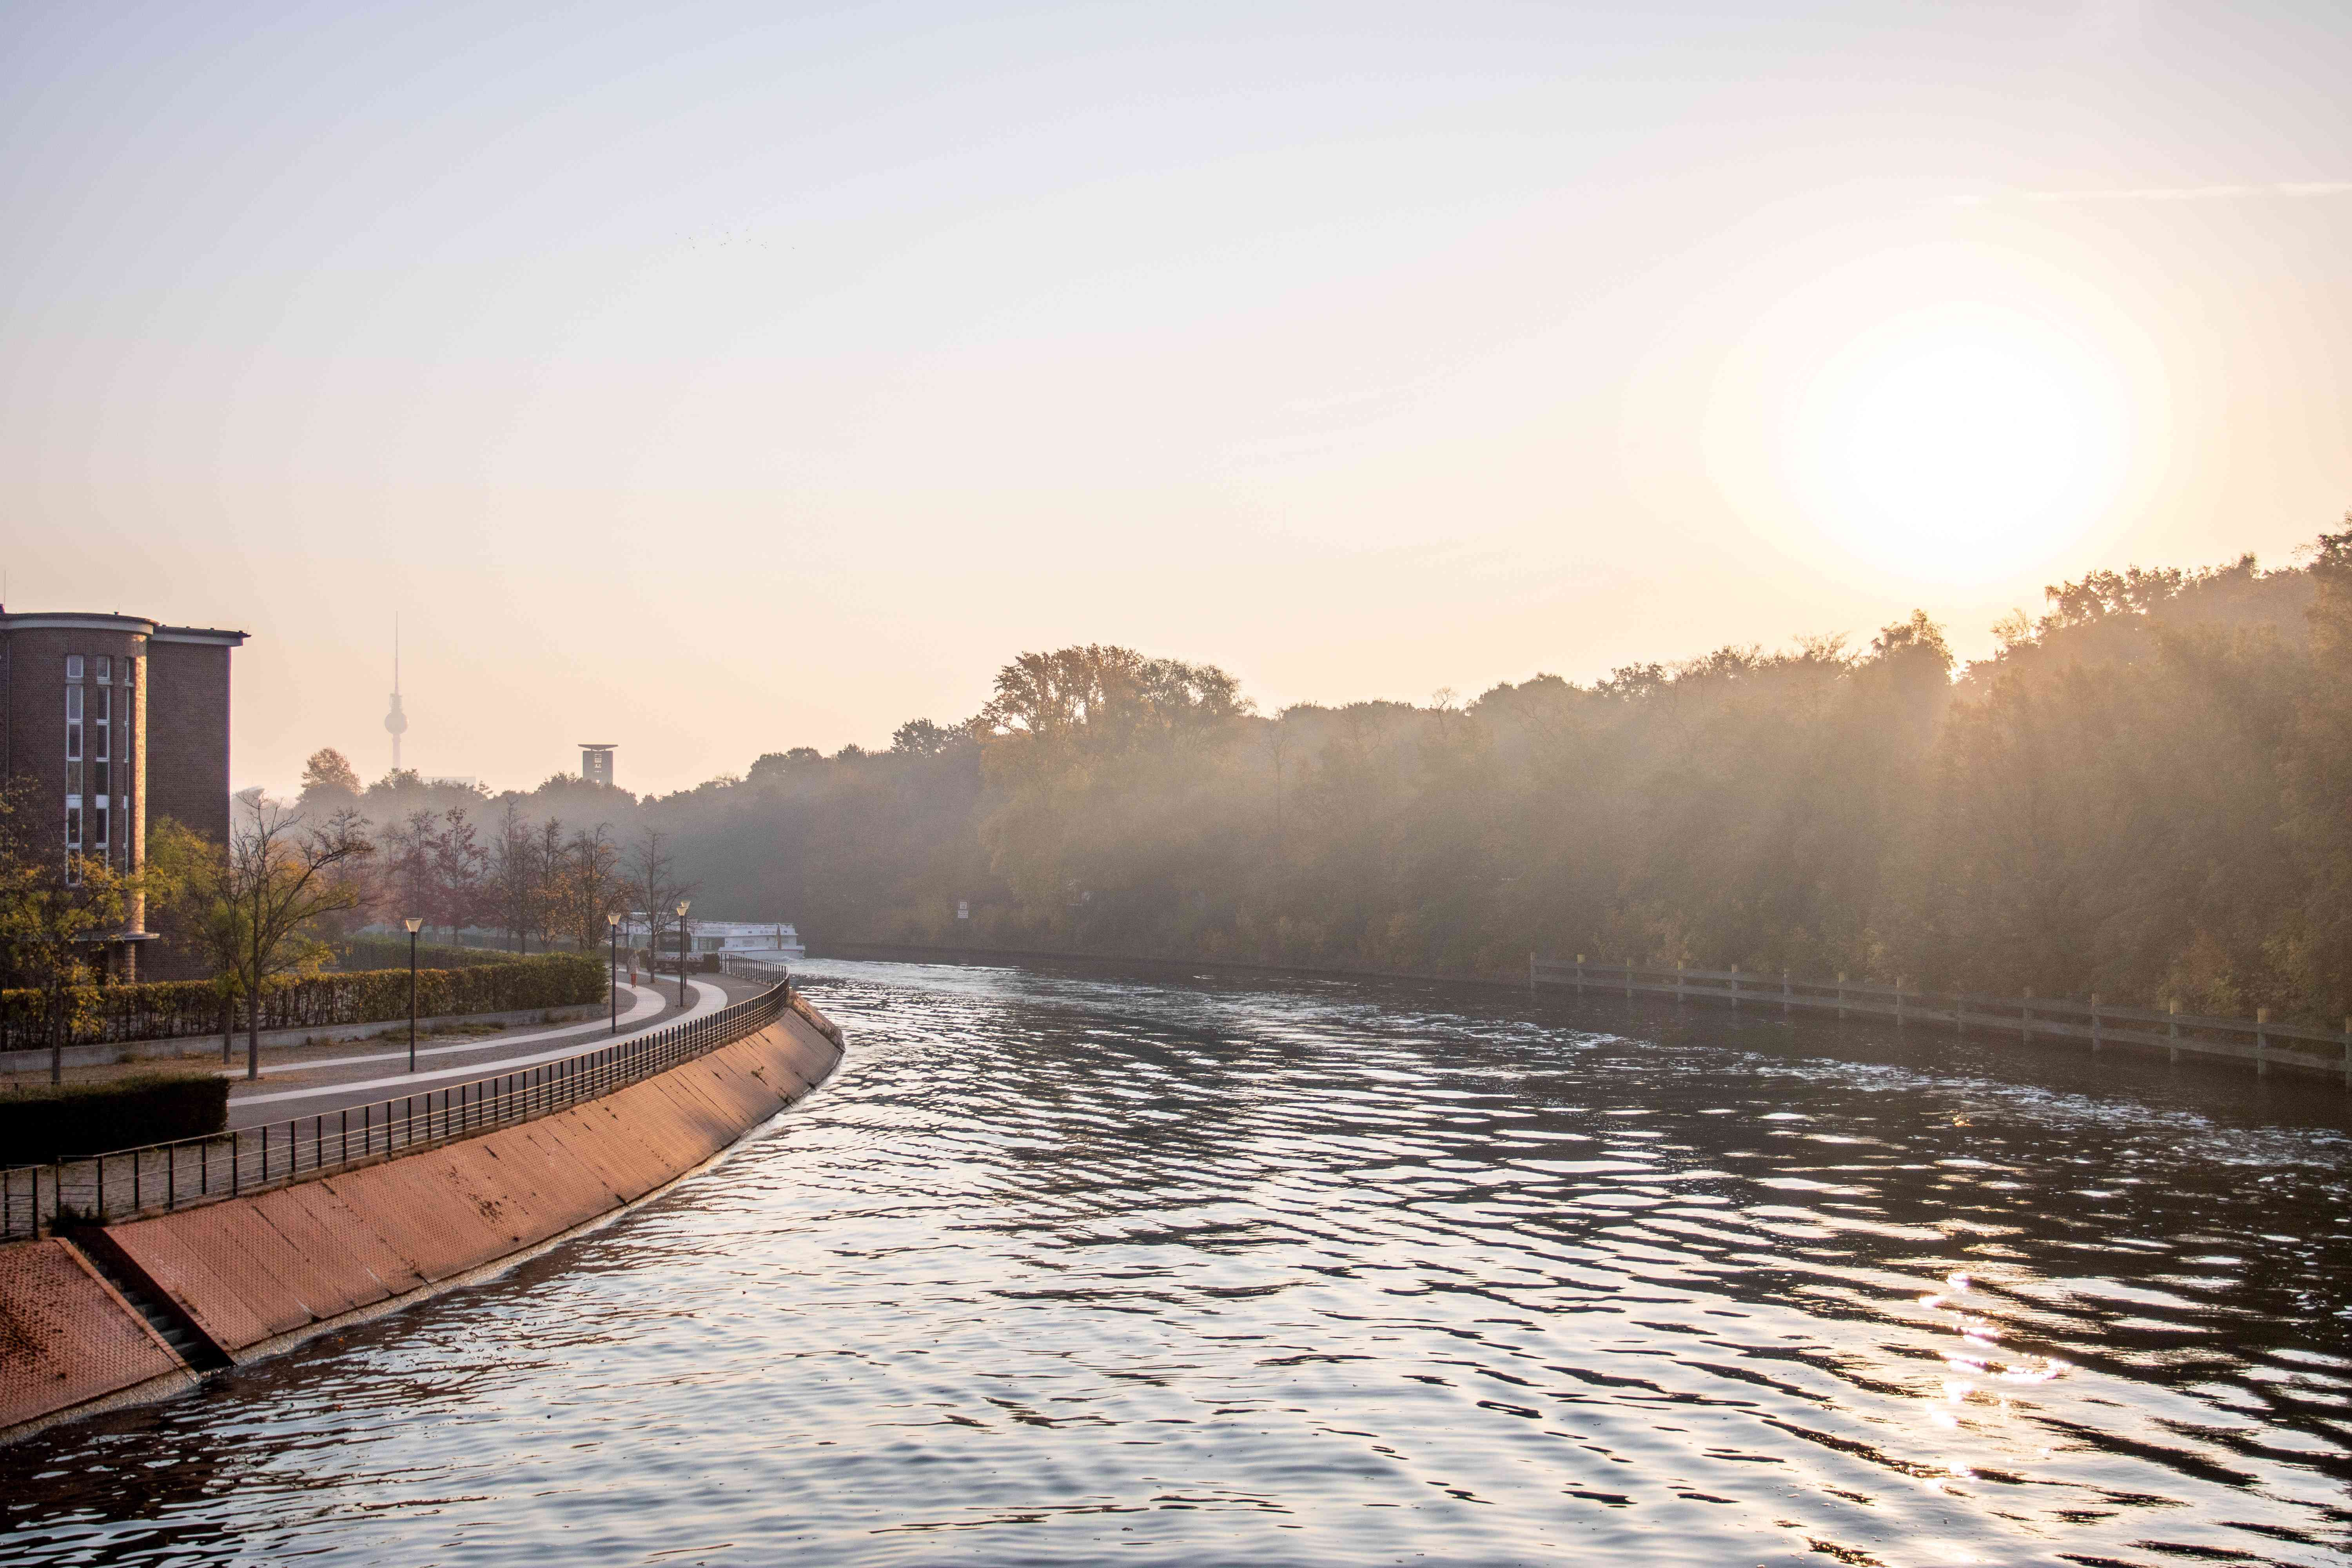 View of the River Spree